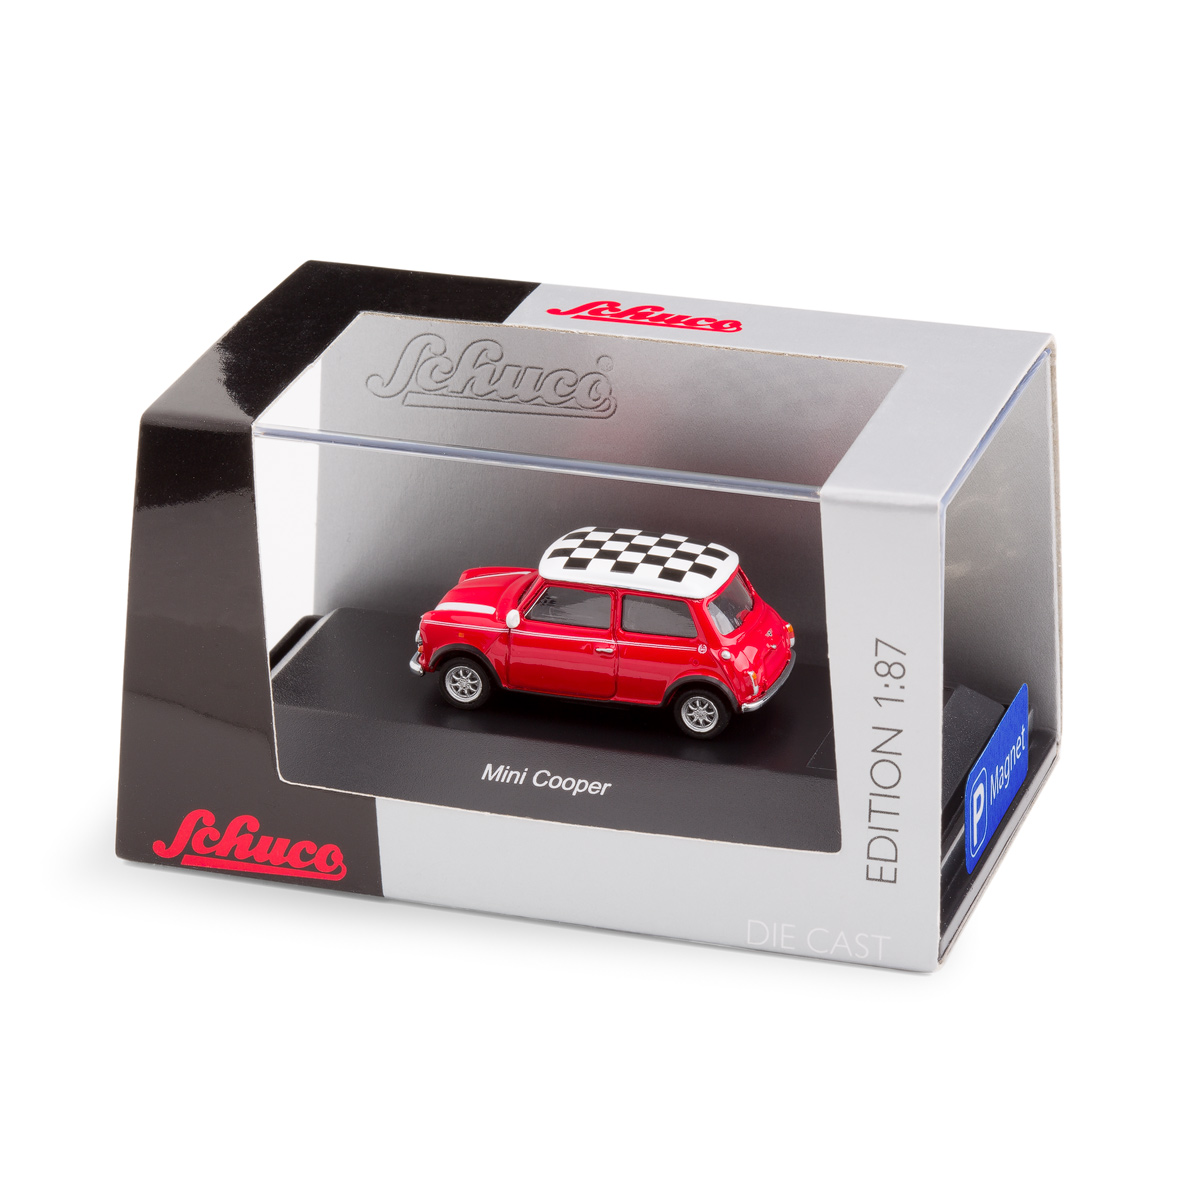 Mini Cooper with magnet in the underfloor   The Design Gift Shop